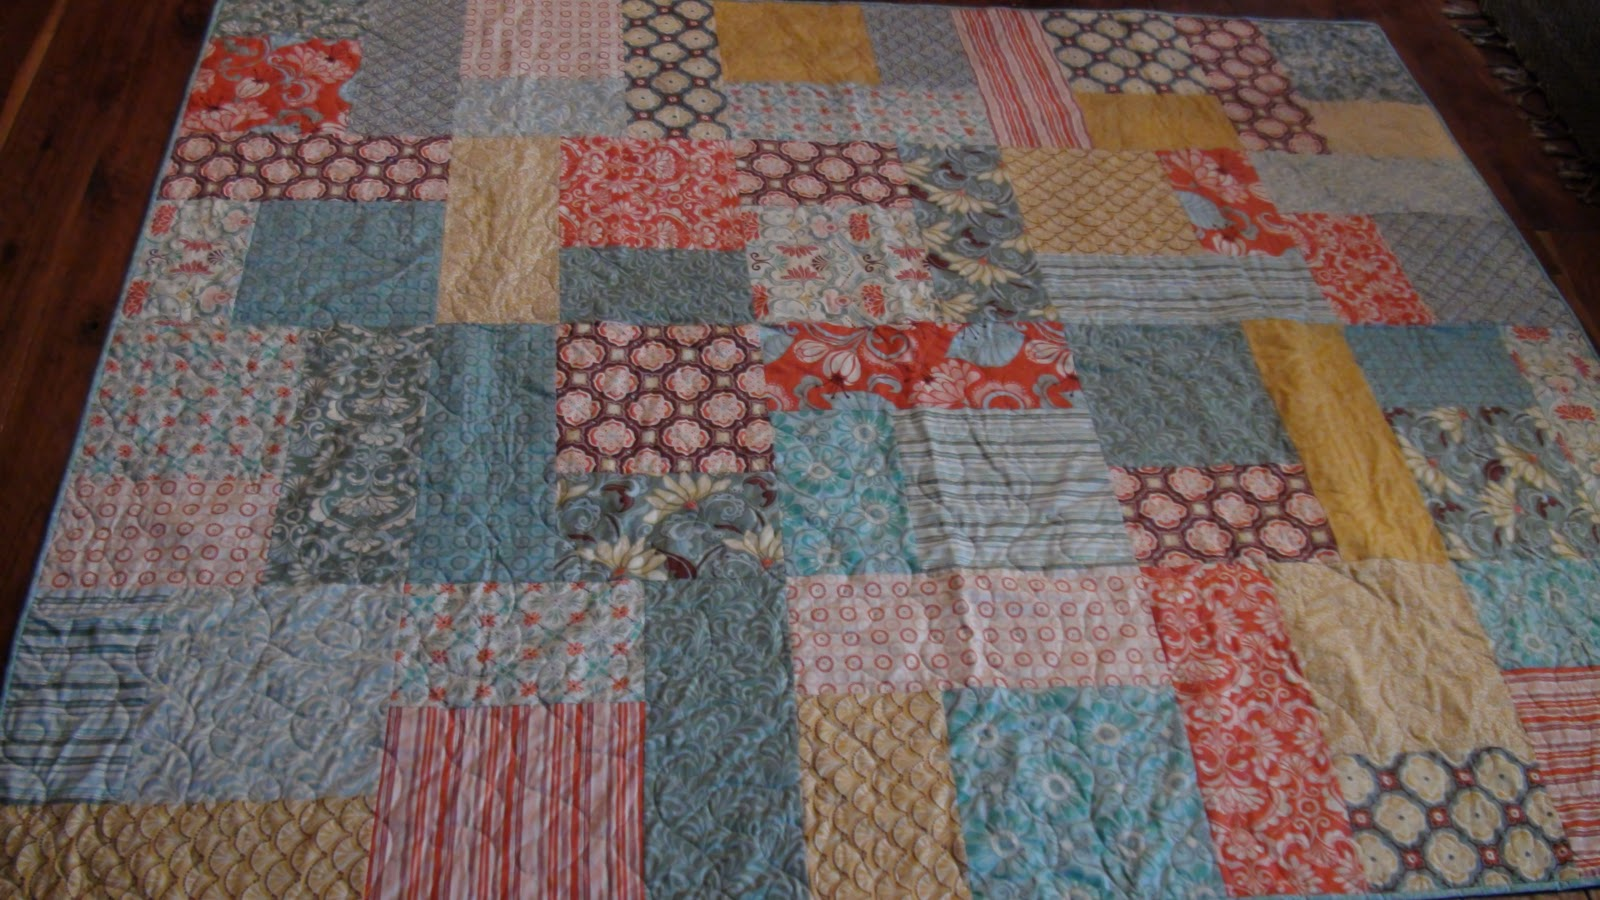 Latimer Lane: Fandango Turning Twenty - Christmas Quilt Project